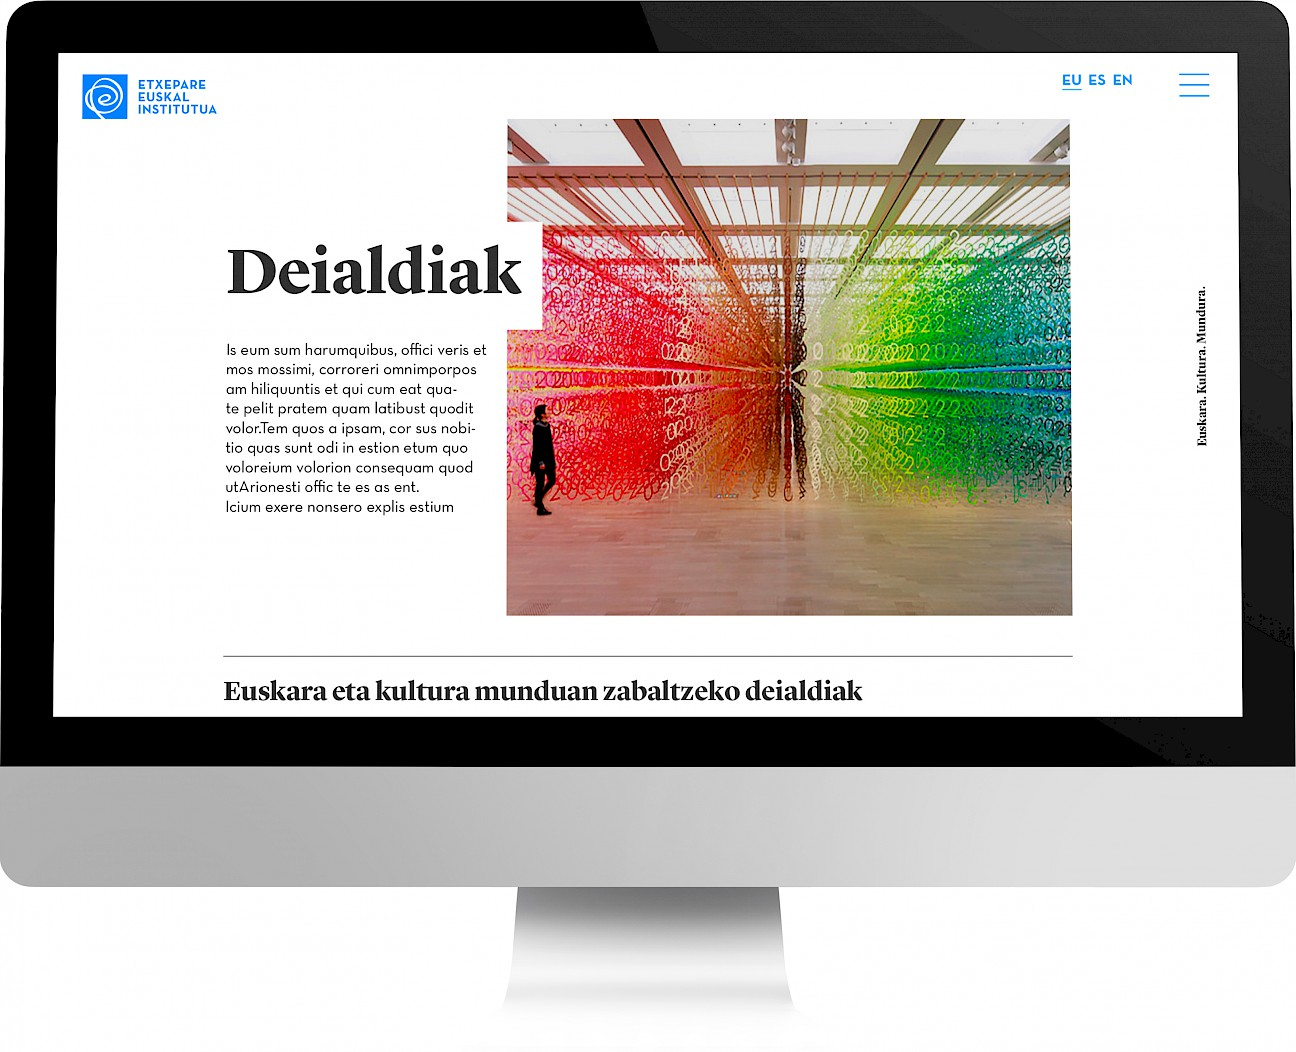 03 spaces website digital design move etxepare branding narrative 1